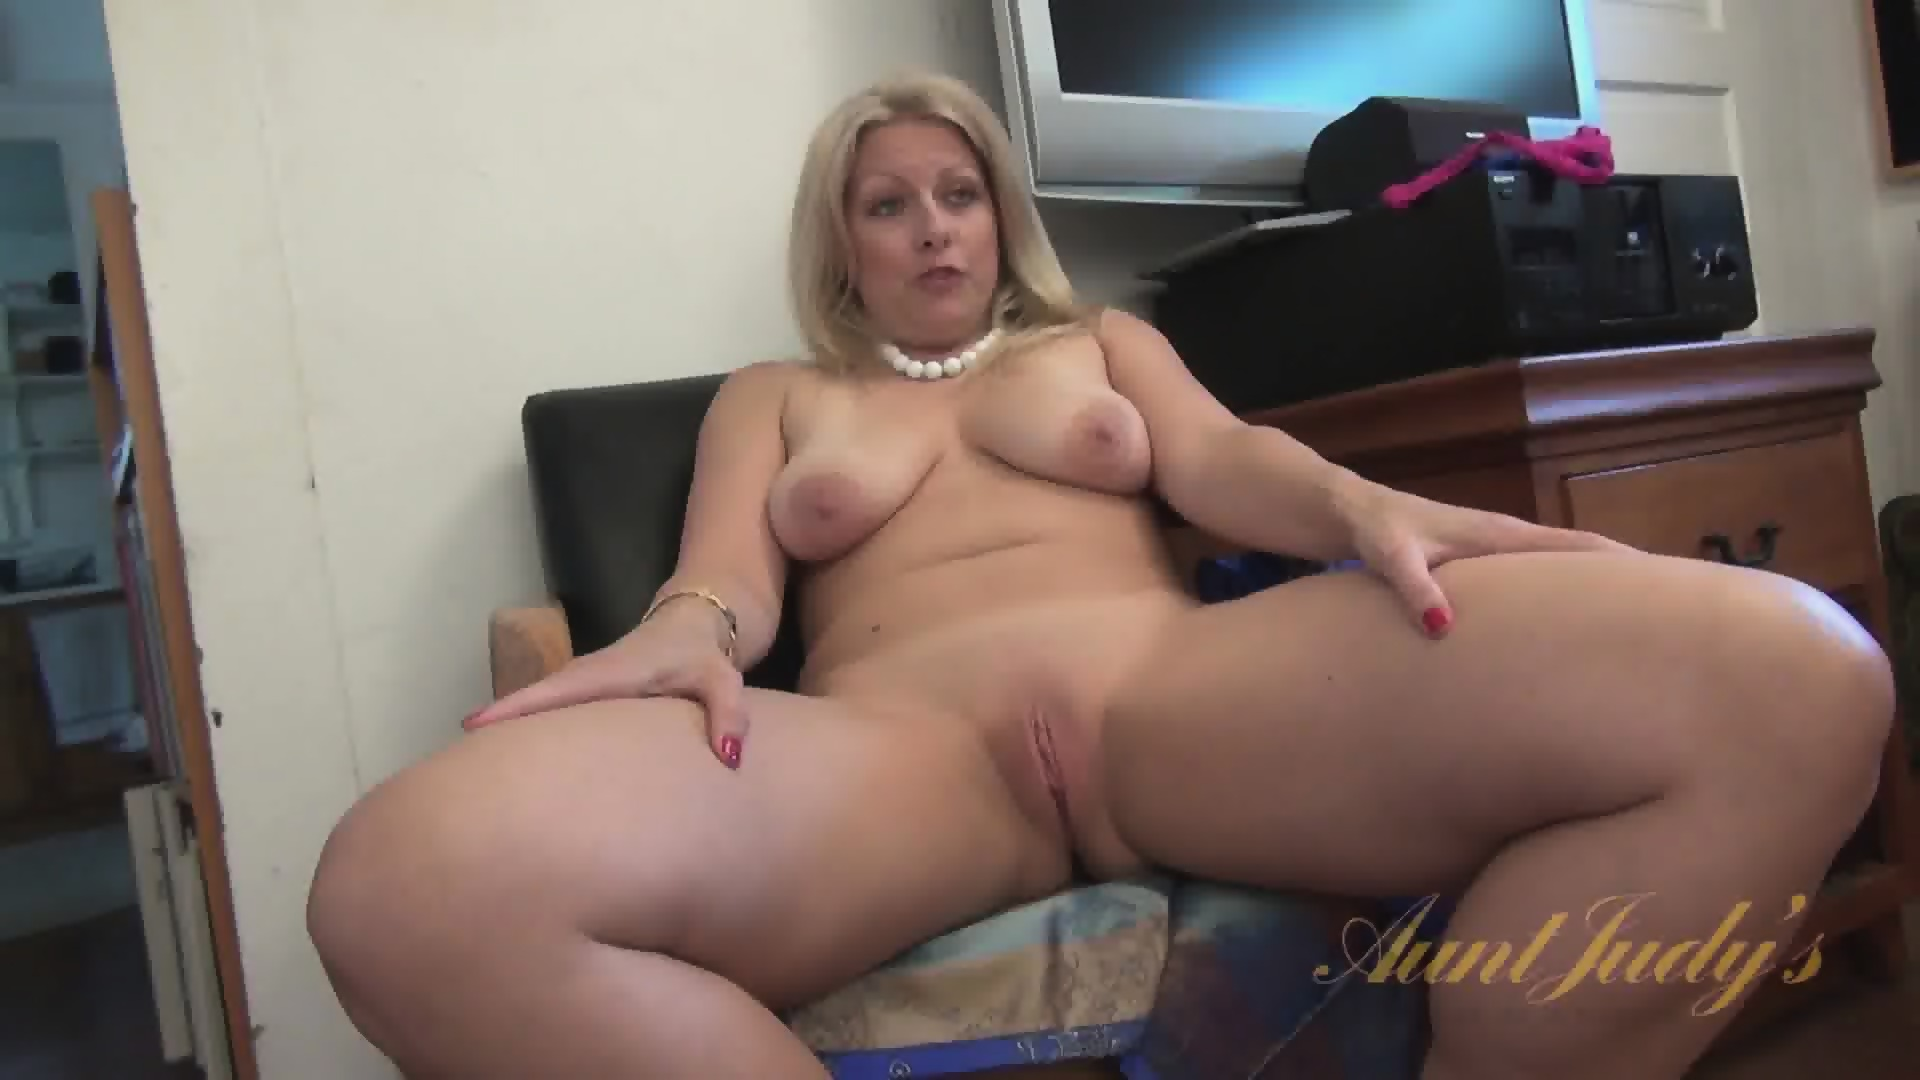 Juicy mommy 11 - 2 part 1